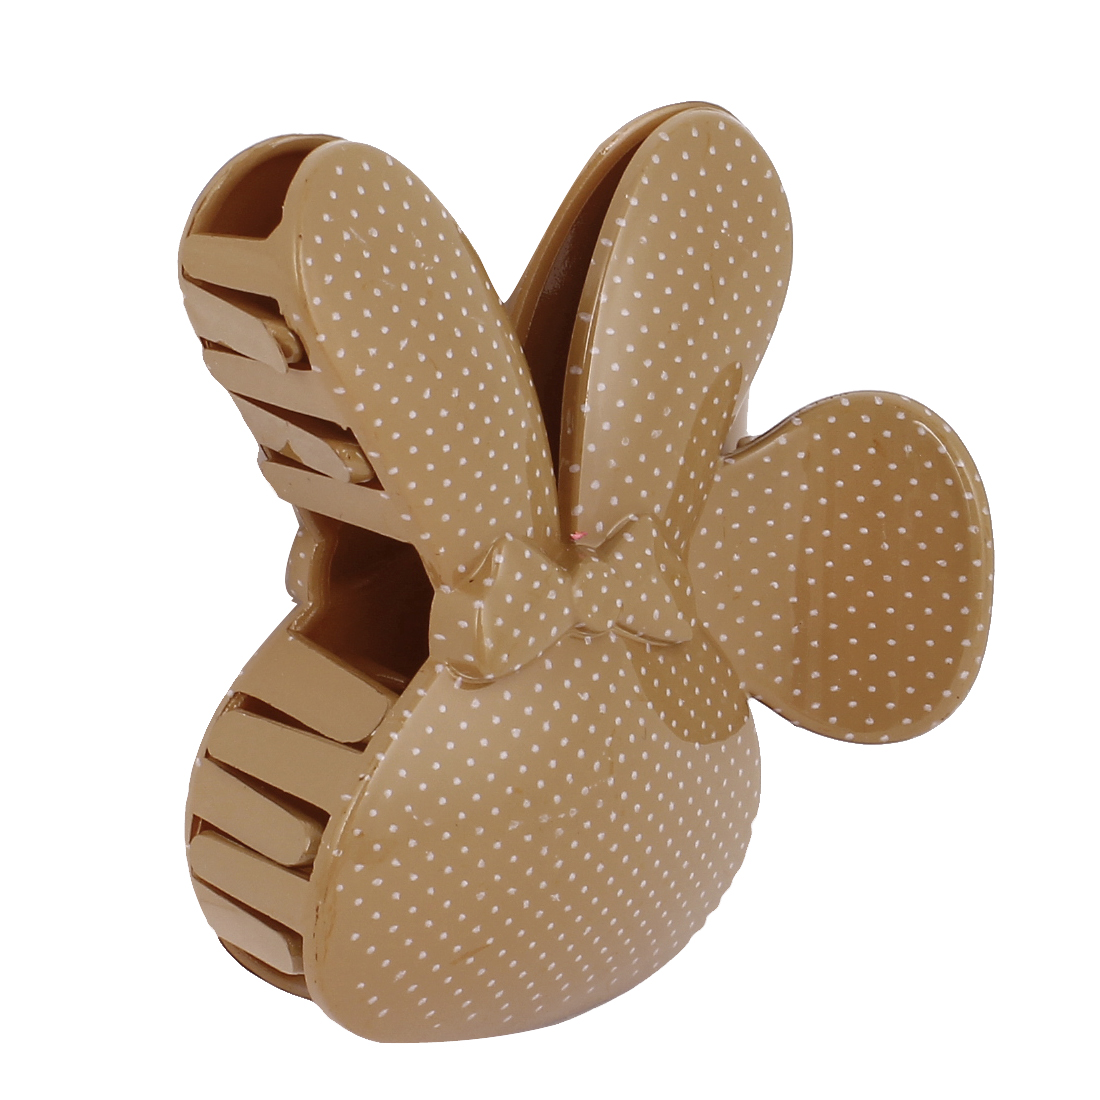 Woman Plastic Dots Pattern Rabbit Design 10 Teeth Hair Jaw Clip Claw Clamp Brown